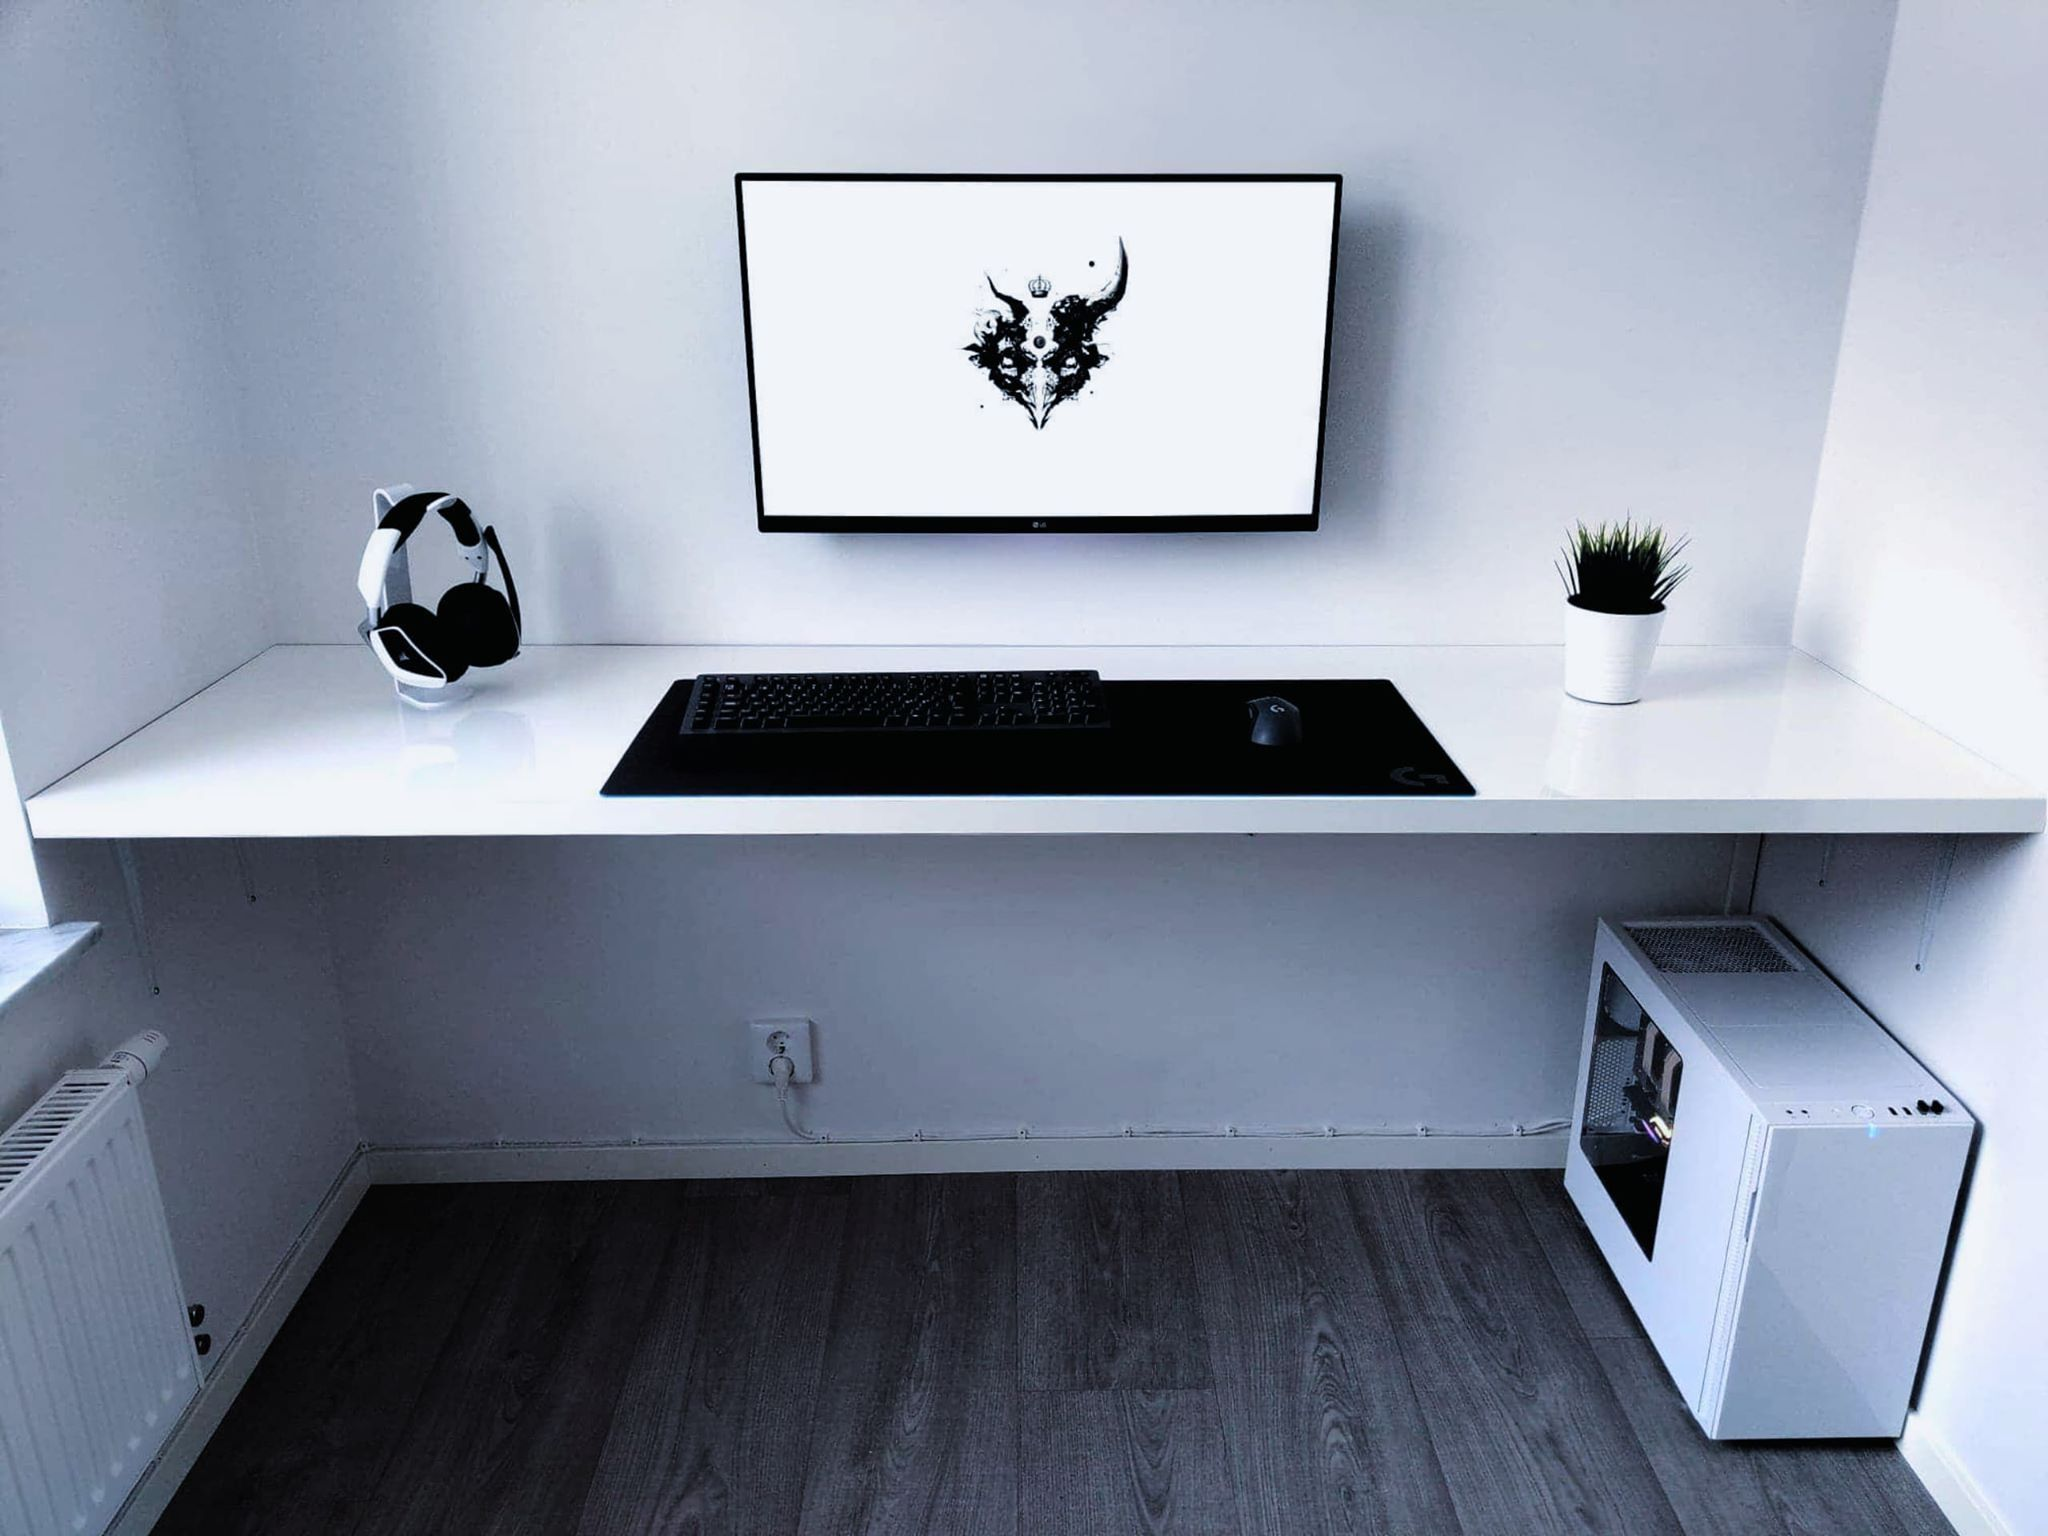 Pin By Rocky Arts On Bureau Room Setup Home Office Setup Gaming Room Setup